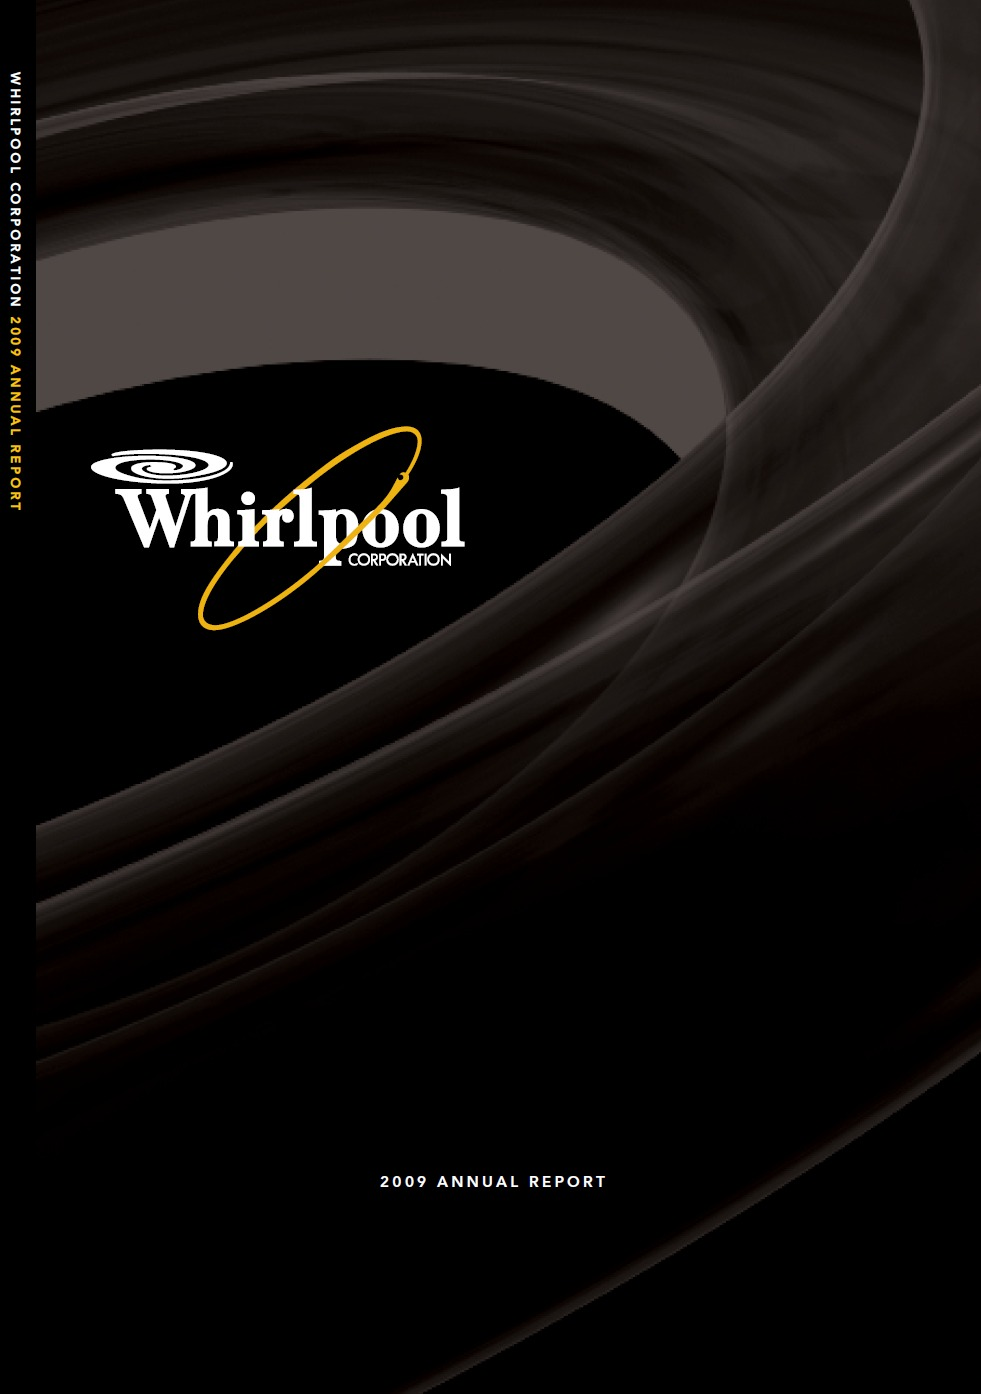 whirlpool corporation 2009 annual report